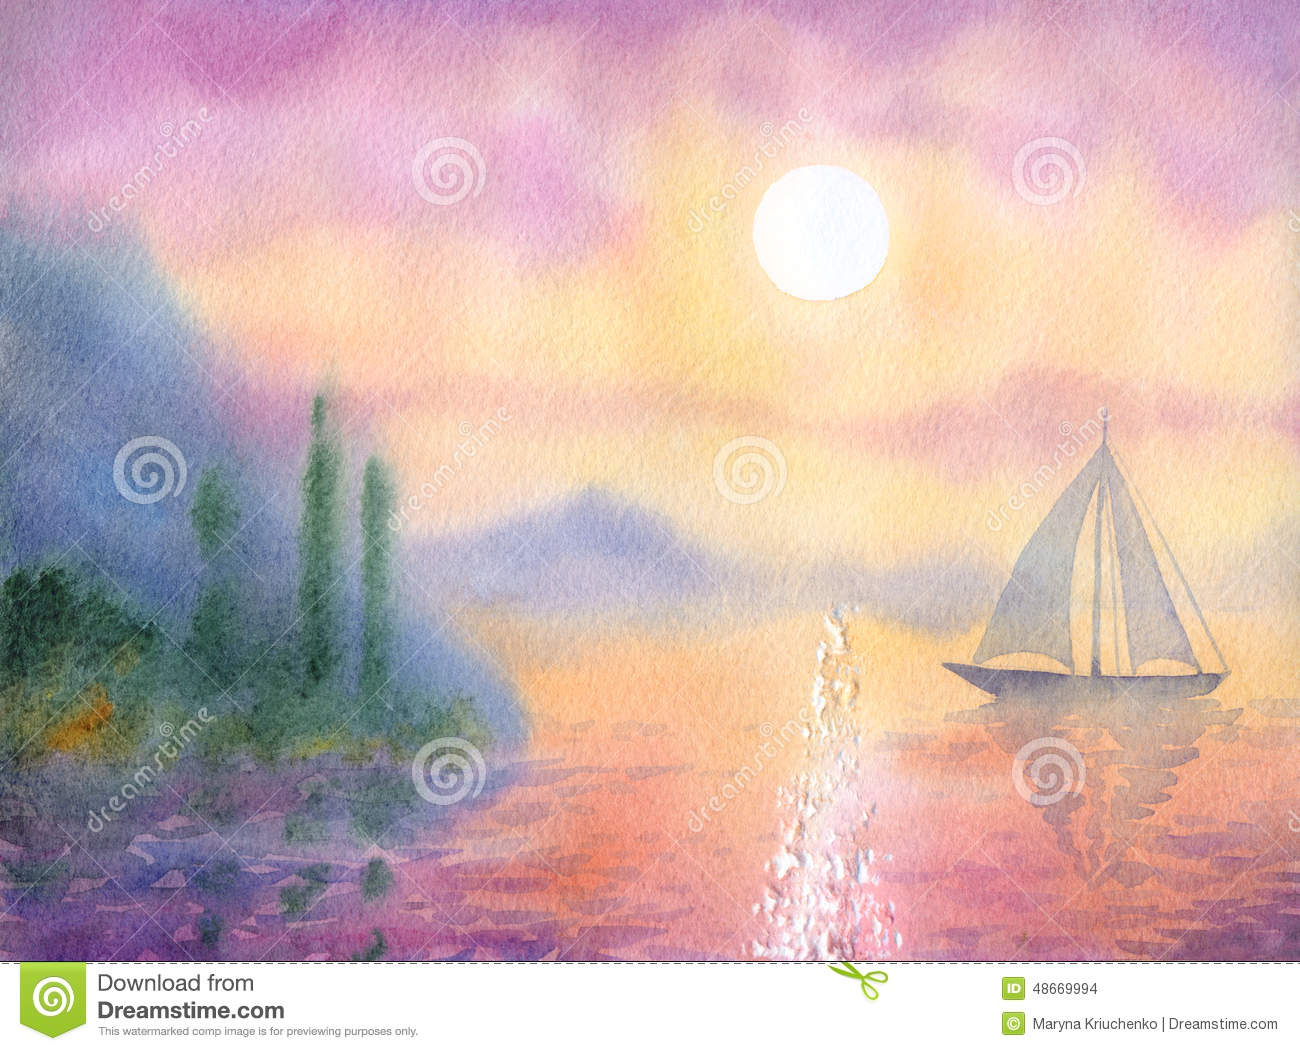 Watercolor Landscape. Sailboat At Sea Quiet Evening Stock Illustration - Image: 48669994